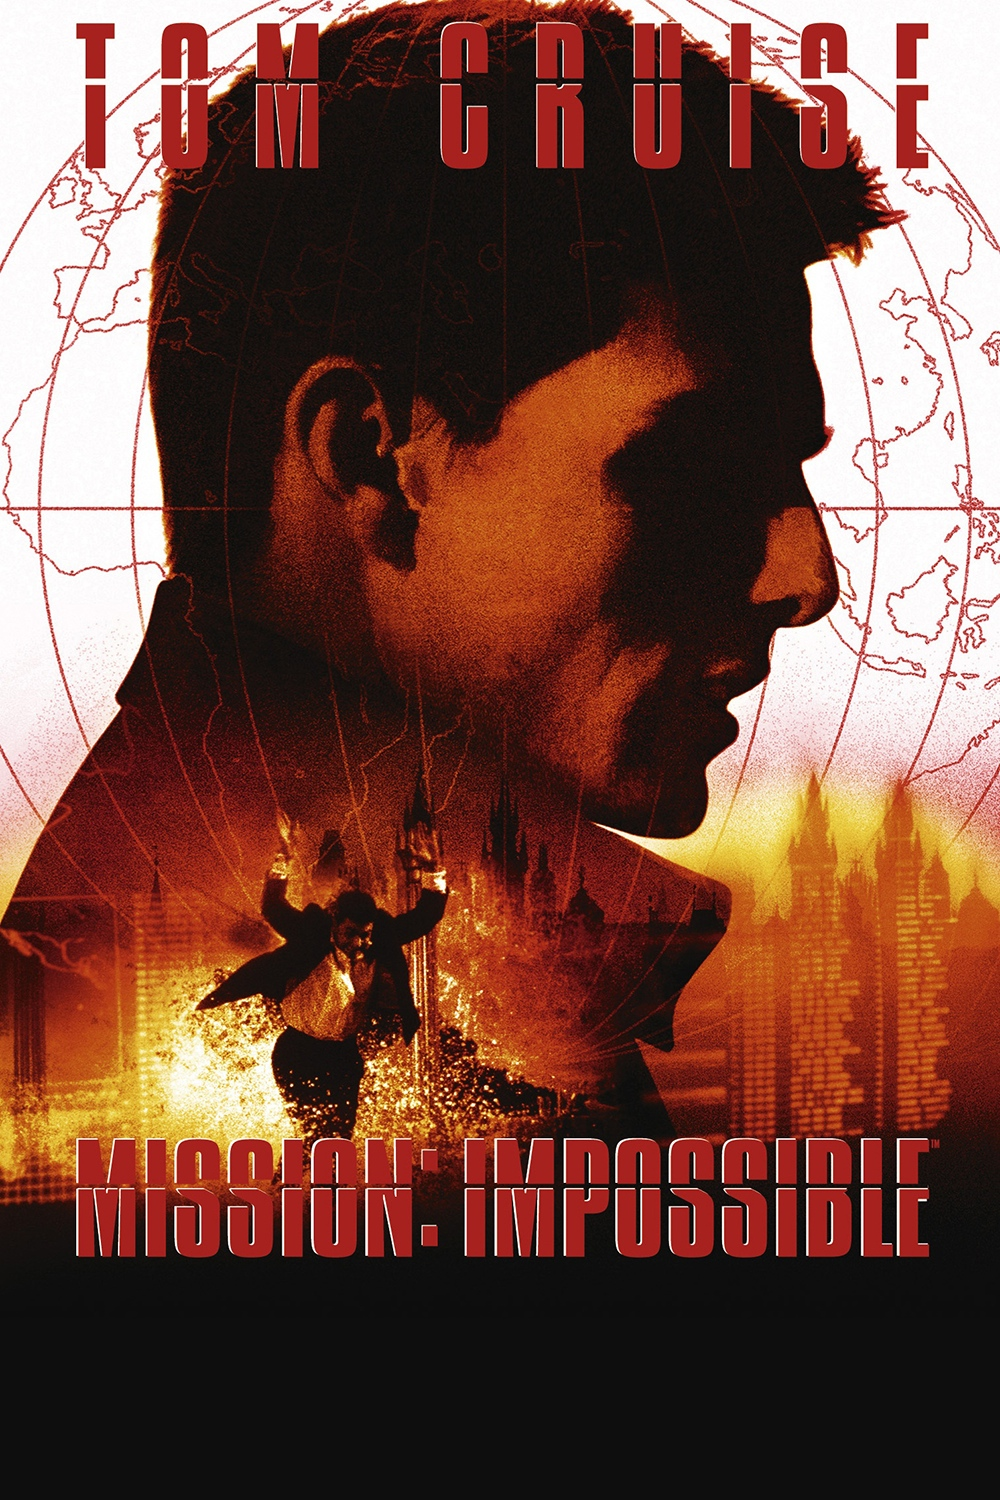 Mission: Impossible(1996) - Directed by: Brian De PalmaStarring: Tom Cruise, Jon Voight, Emmanuelle Beart, Henry CzernyRated: PG-13Running Time: 1h 50mTMM Score: 4 stars out of 5STRENGTHS: Directorial Vision, Atmosphere, Set PiecesWEAKNESSES: Feels Dated at Times, Is a Real Slam to Fans of The Show